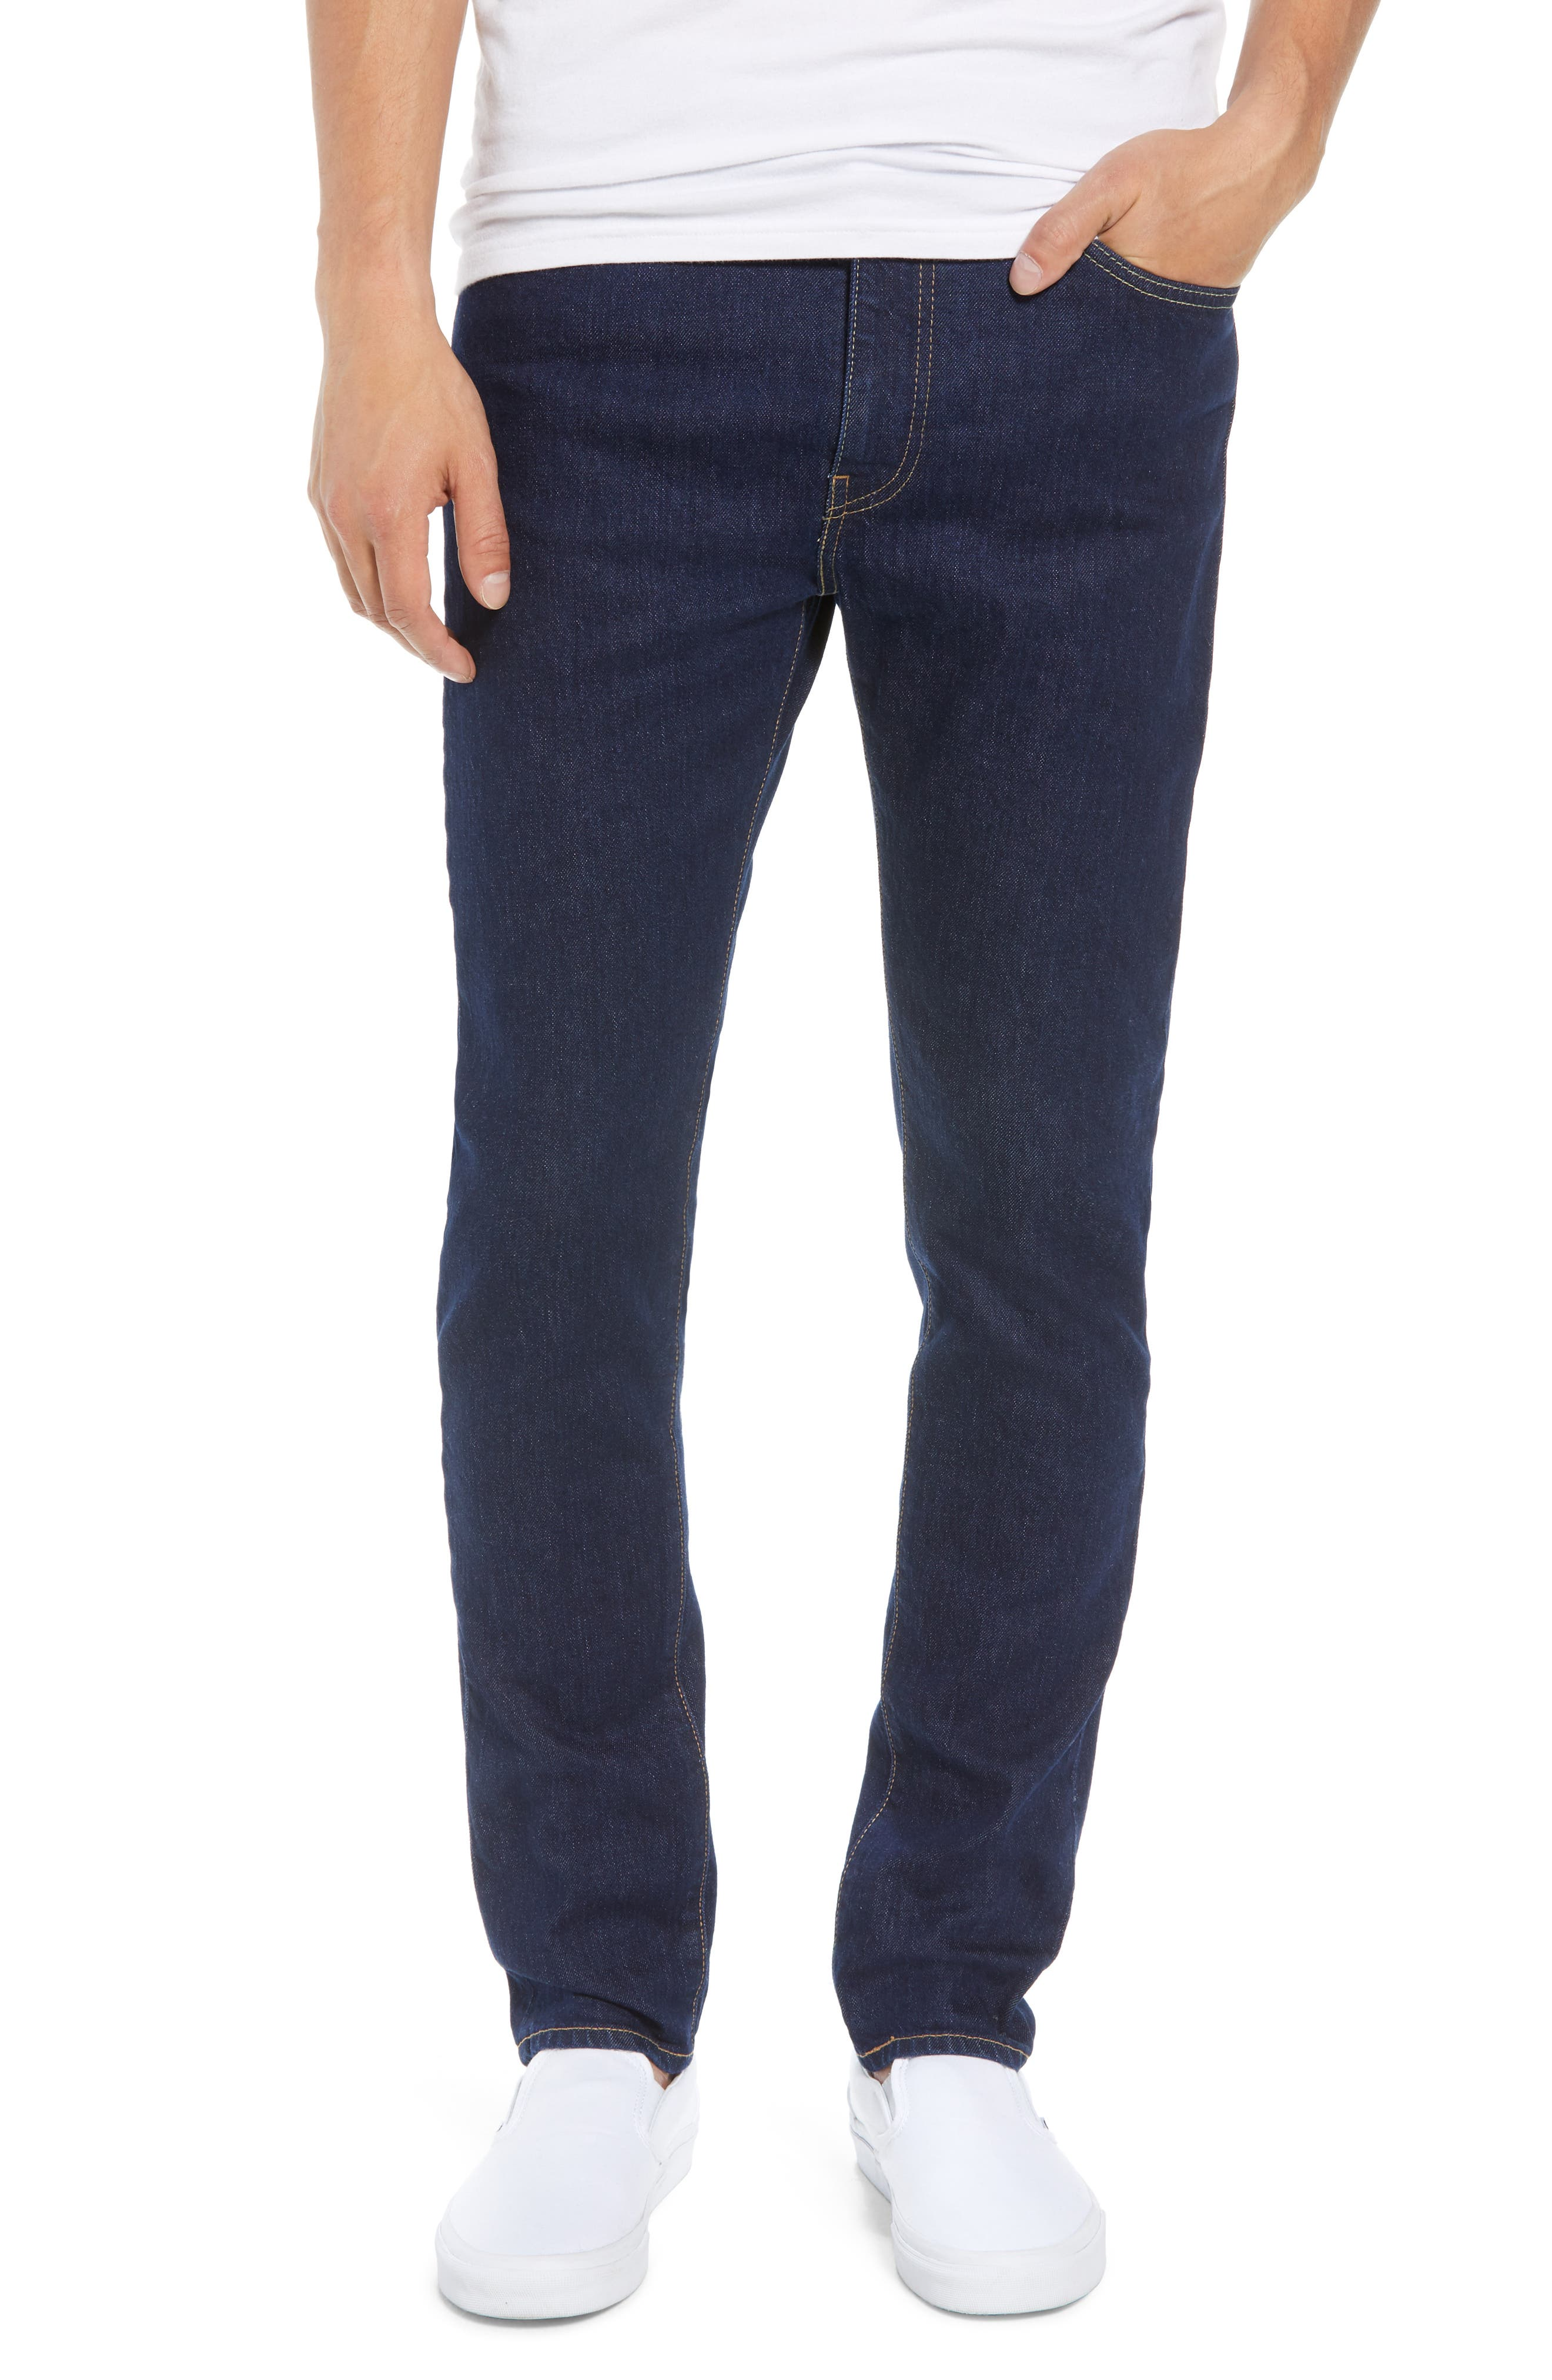 510<sup>™</sup> Skinny Fit Jeans,                             Main thumbnail 1, color,                             CHAIN RINSE